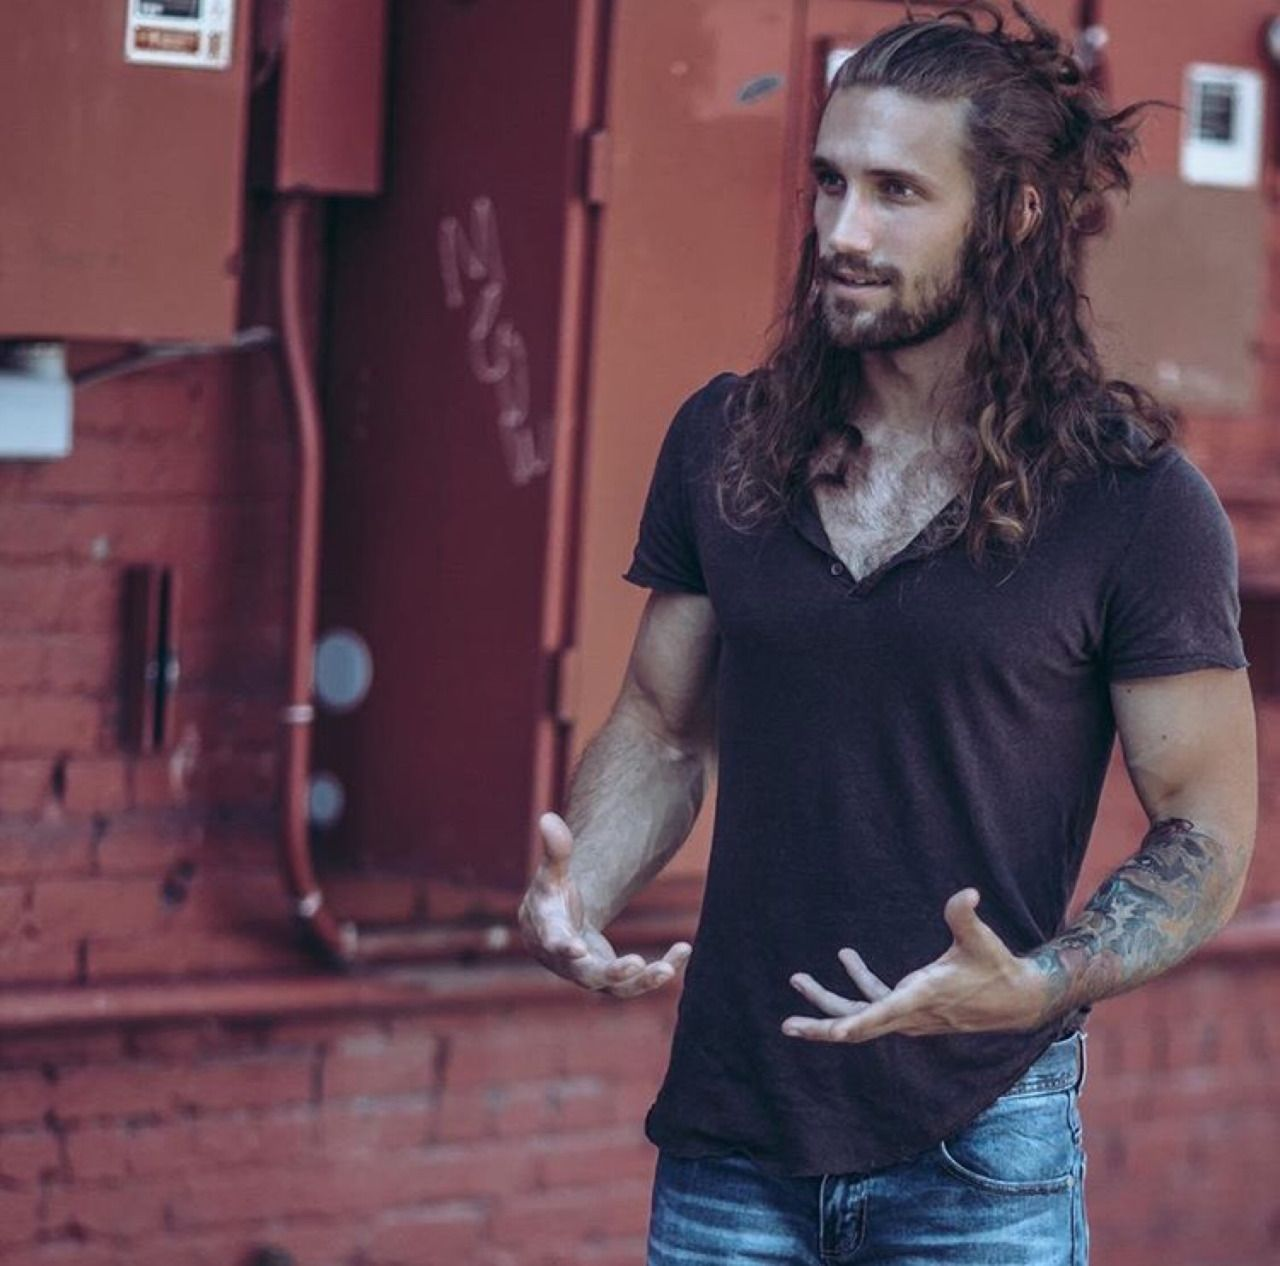 GuysWithLongHair : William Tyler.